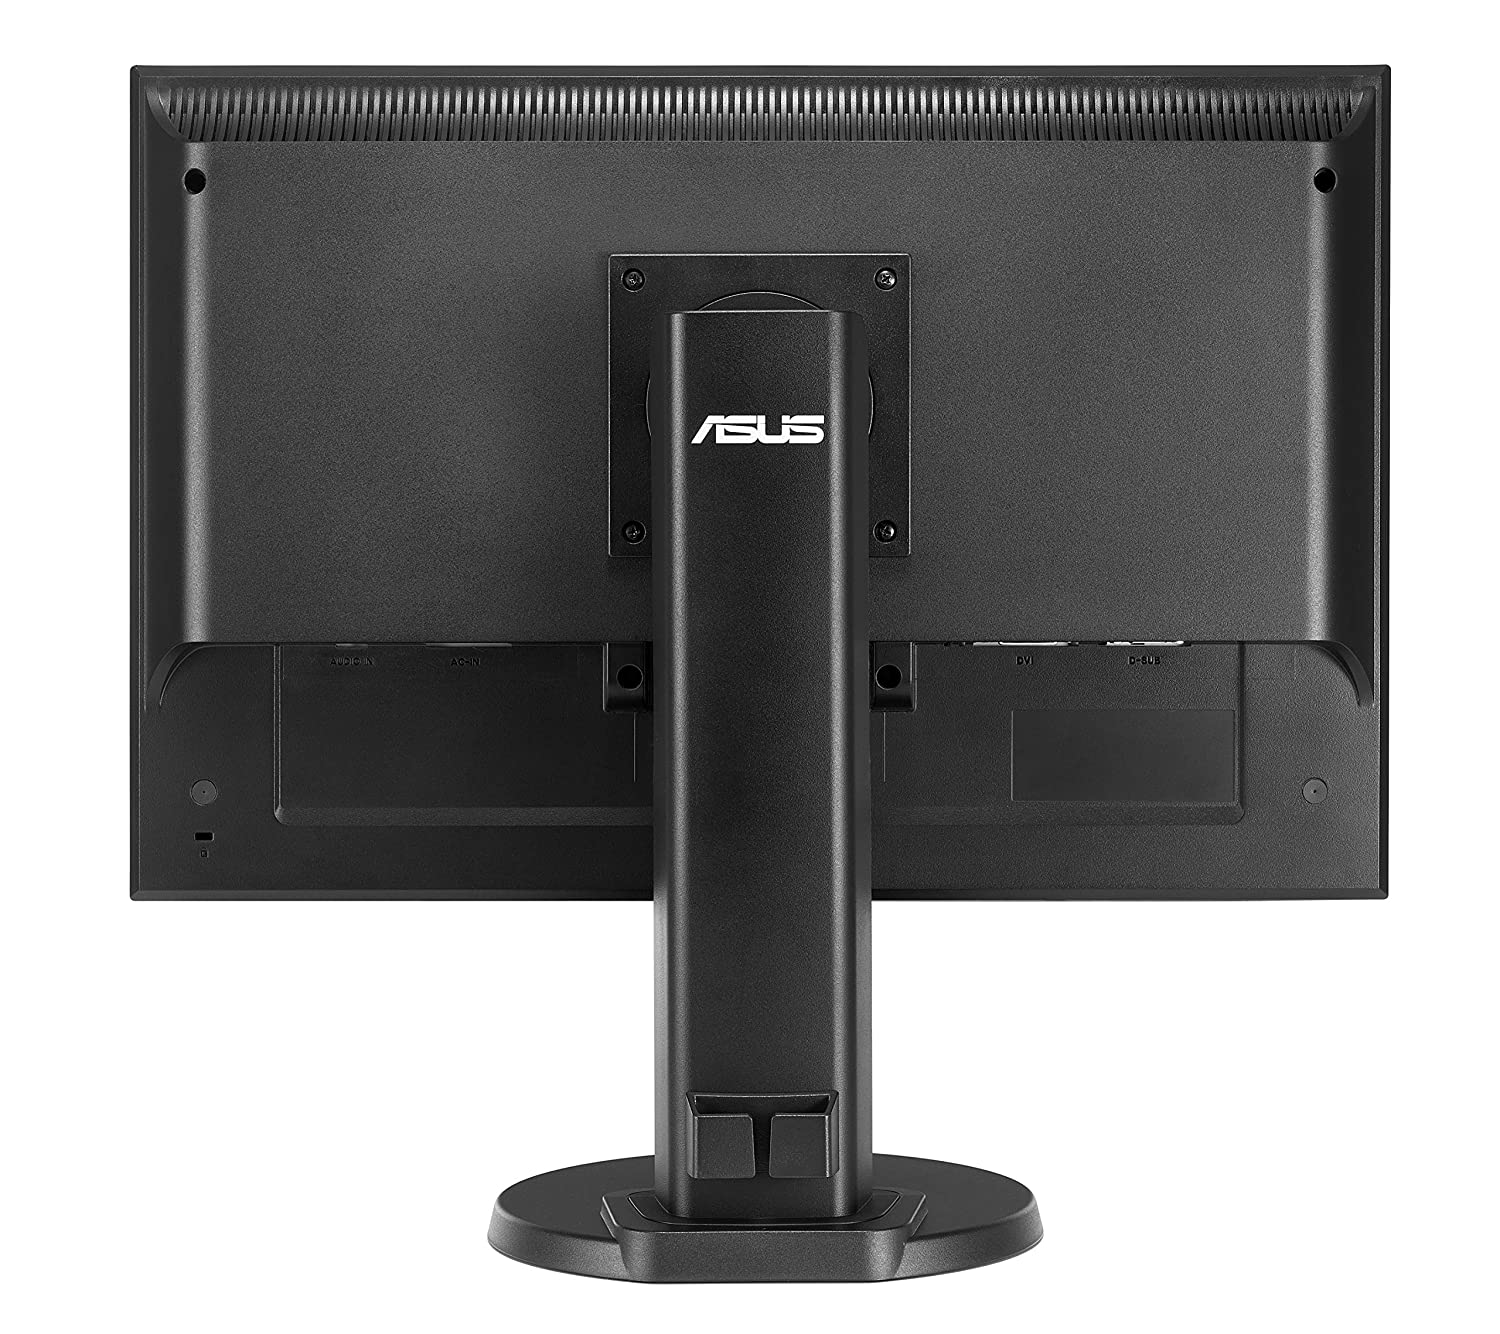 ASUS LCD MONITOR MM17D DRIVER UPDATE